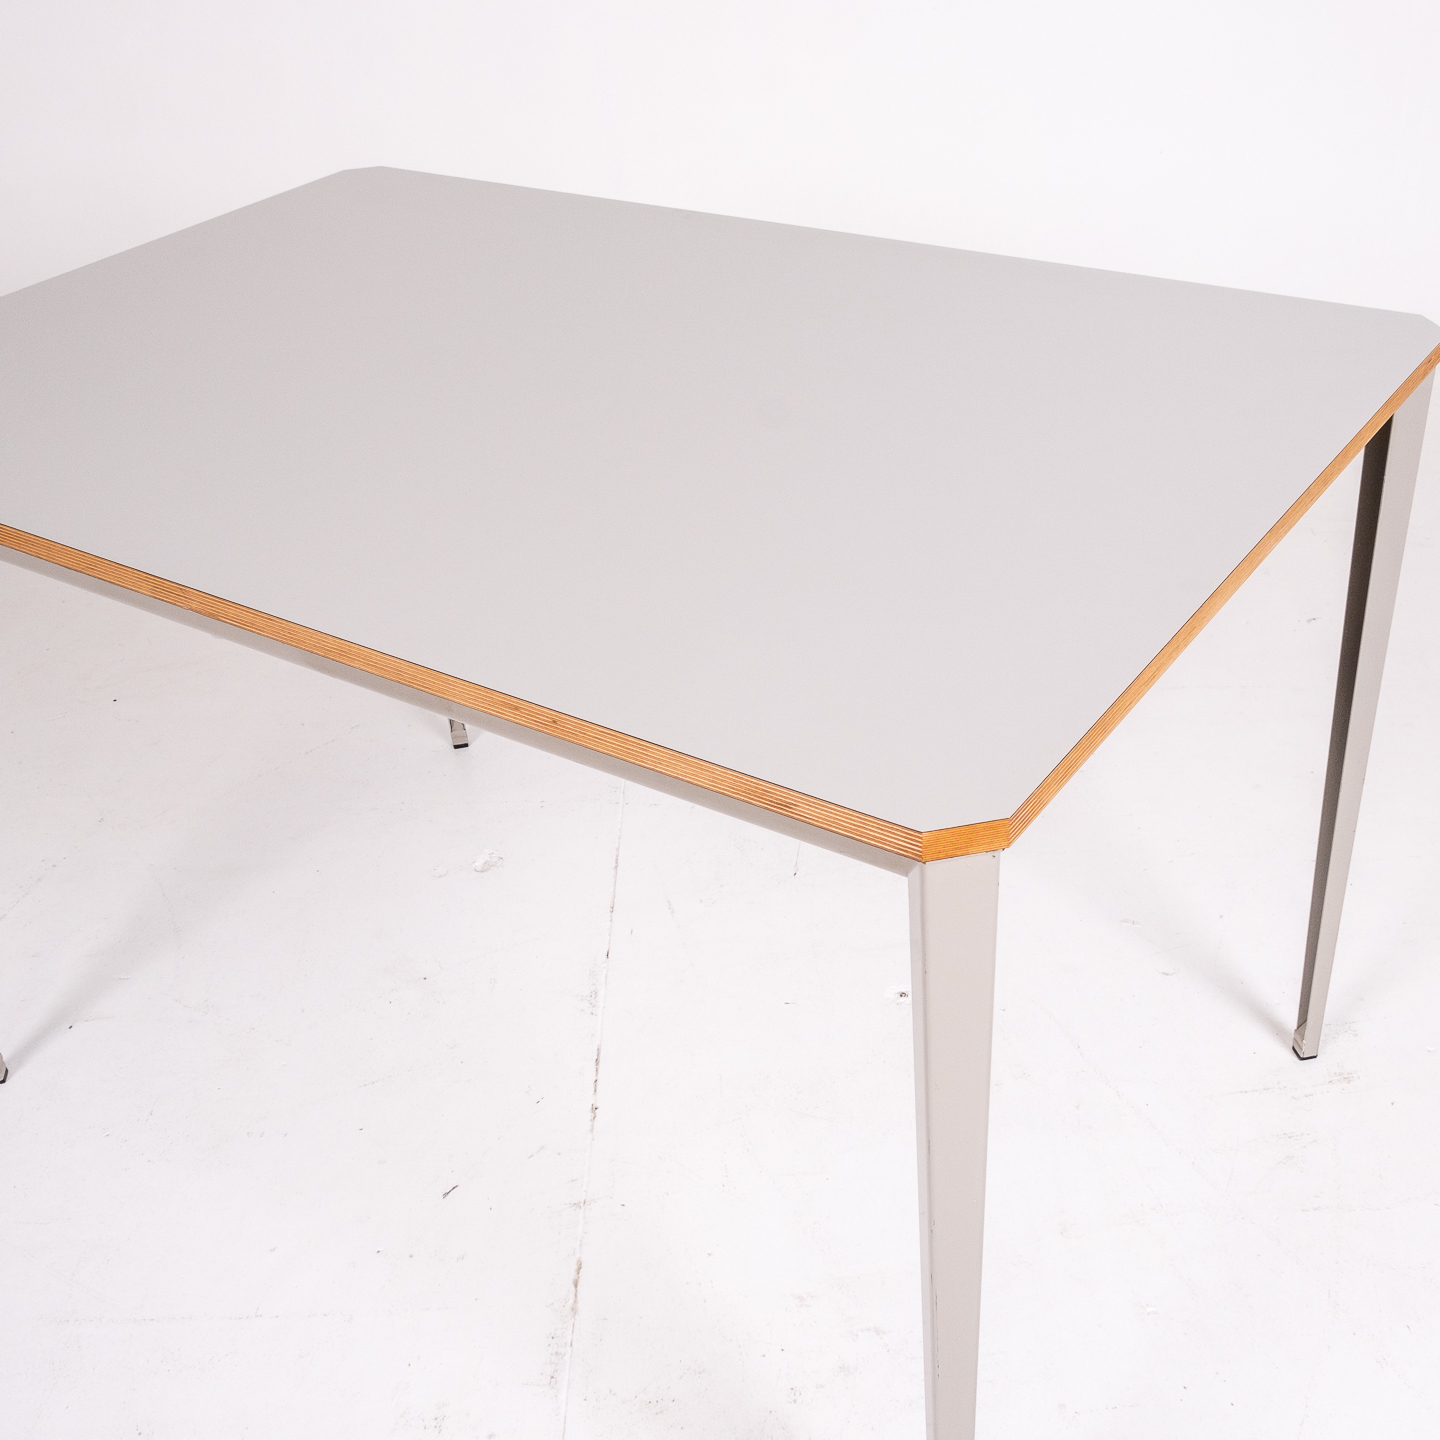 Recent Table By Wim Rietveld For Ahrend De Cirkel With Grey Steel Base, 1960s, The Netherlands73